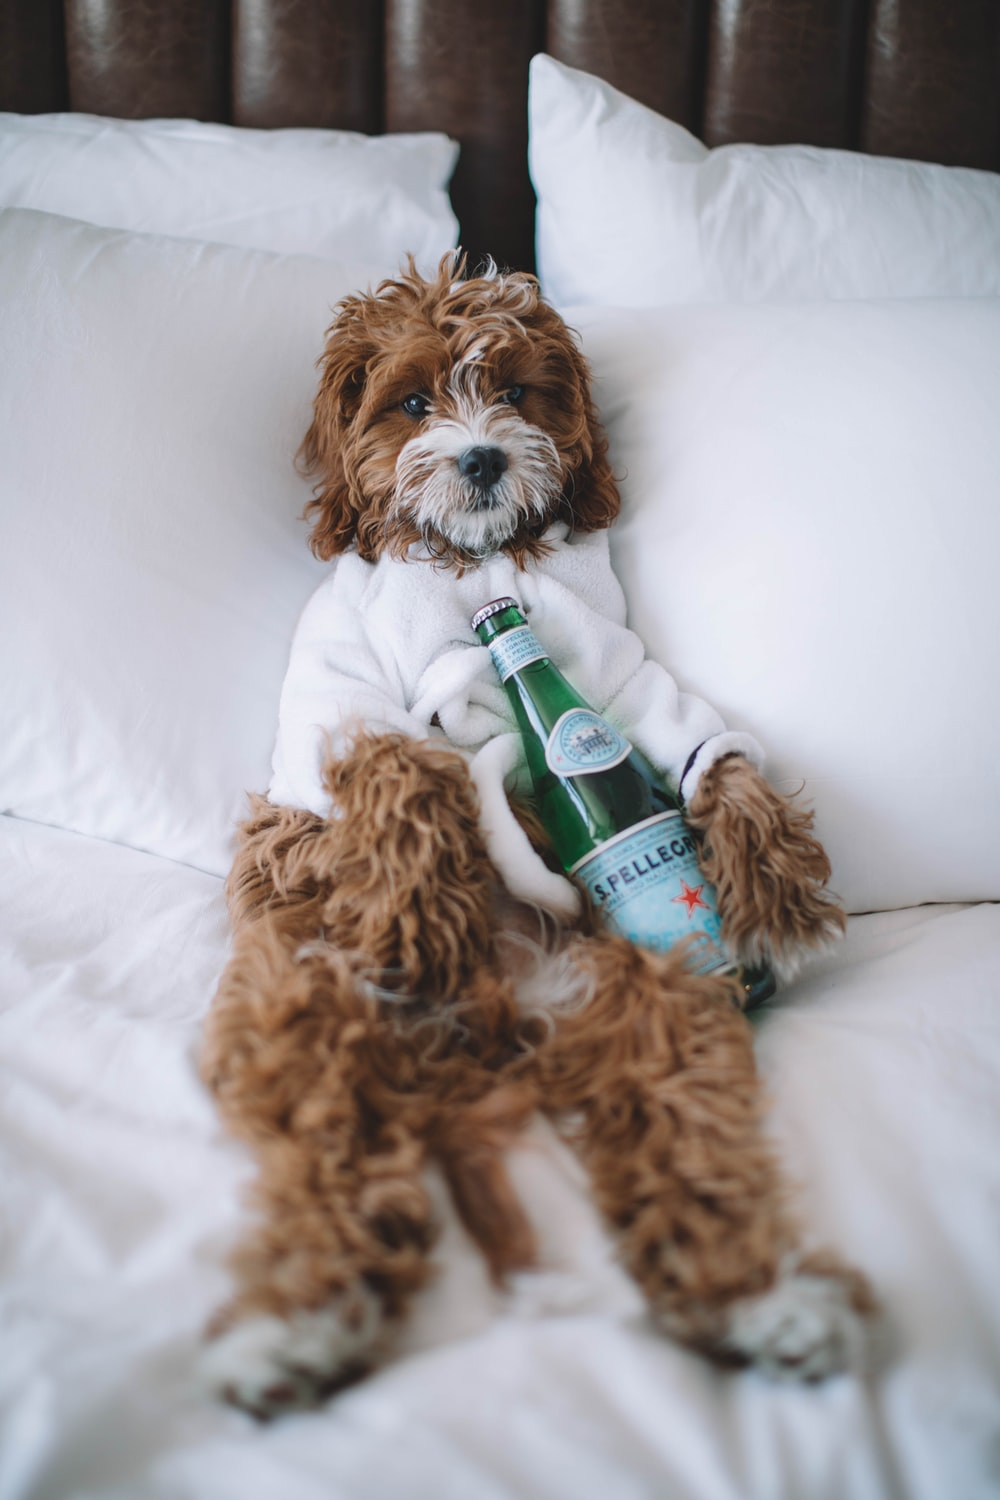 brown dog lying on bed with bottle of S. Pellegrino sparkling water